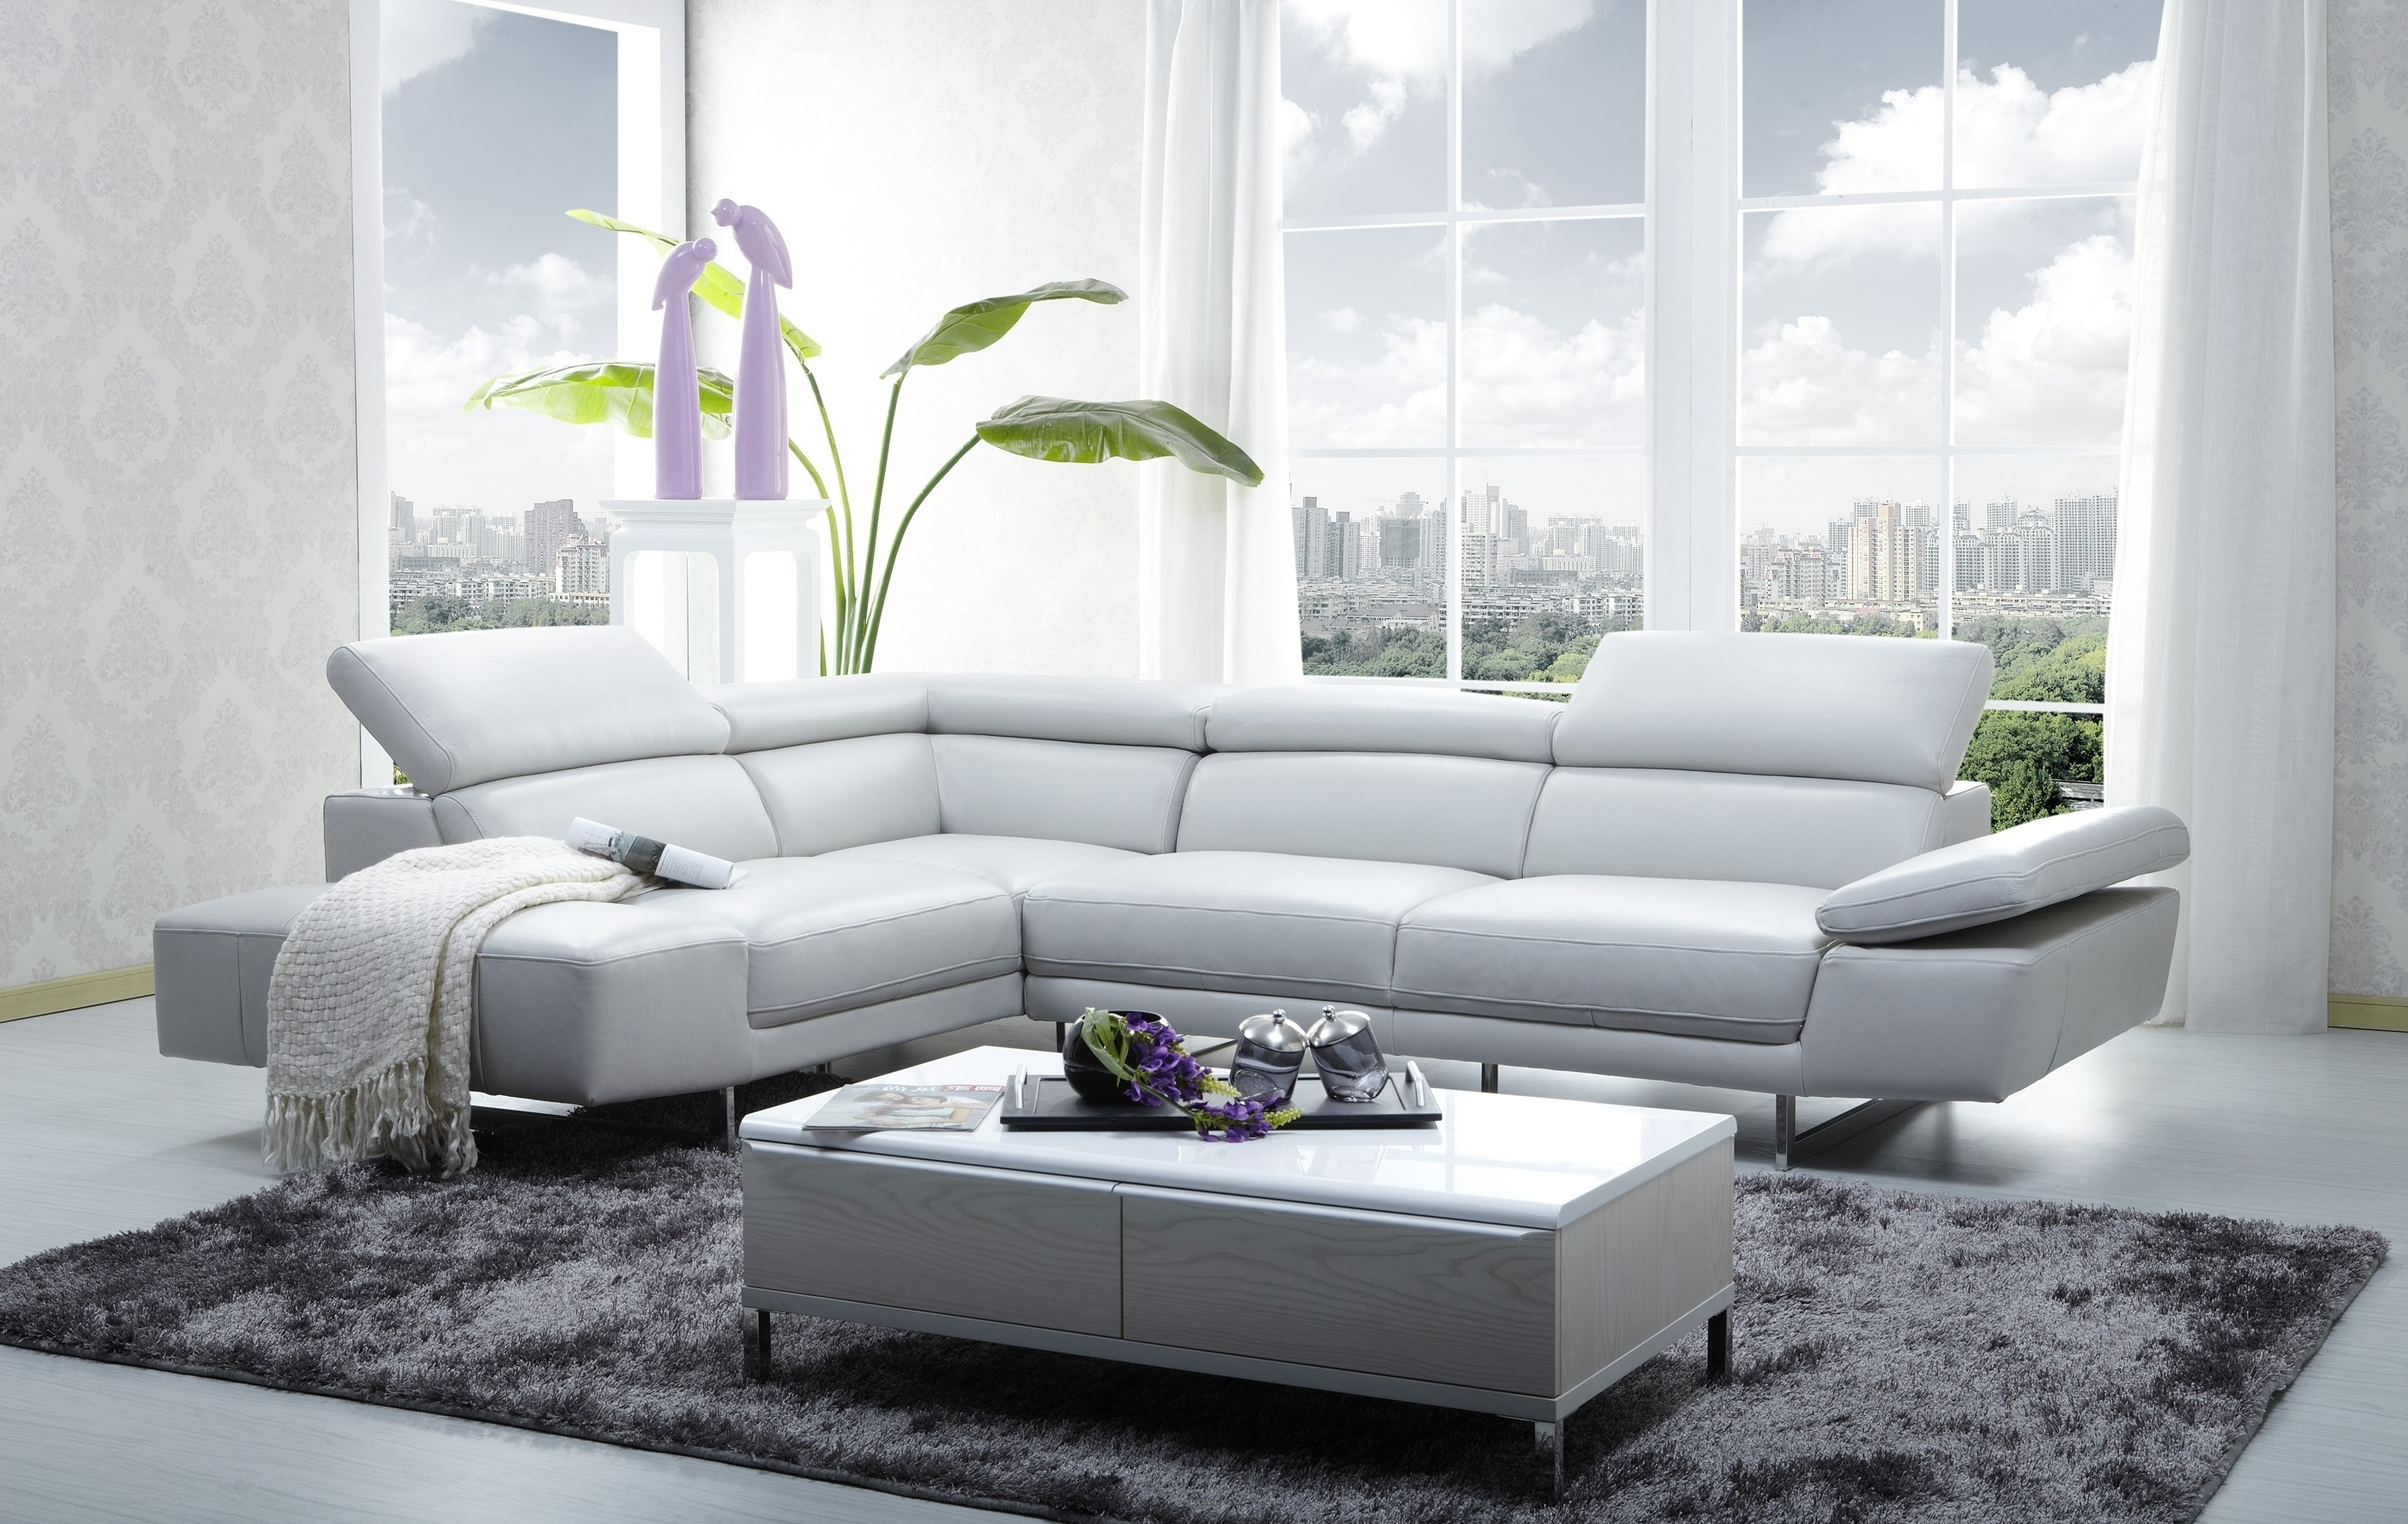 Furniture : Paris 1 White Tufted Leather Sectional Sofa Tufted For Recent Kijiji Montreal Sectional Sofas (View 7 of 15)